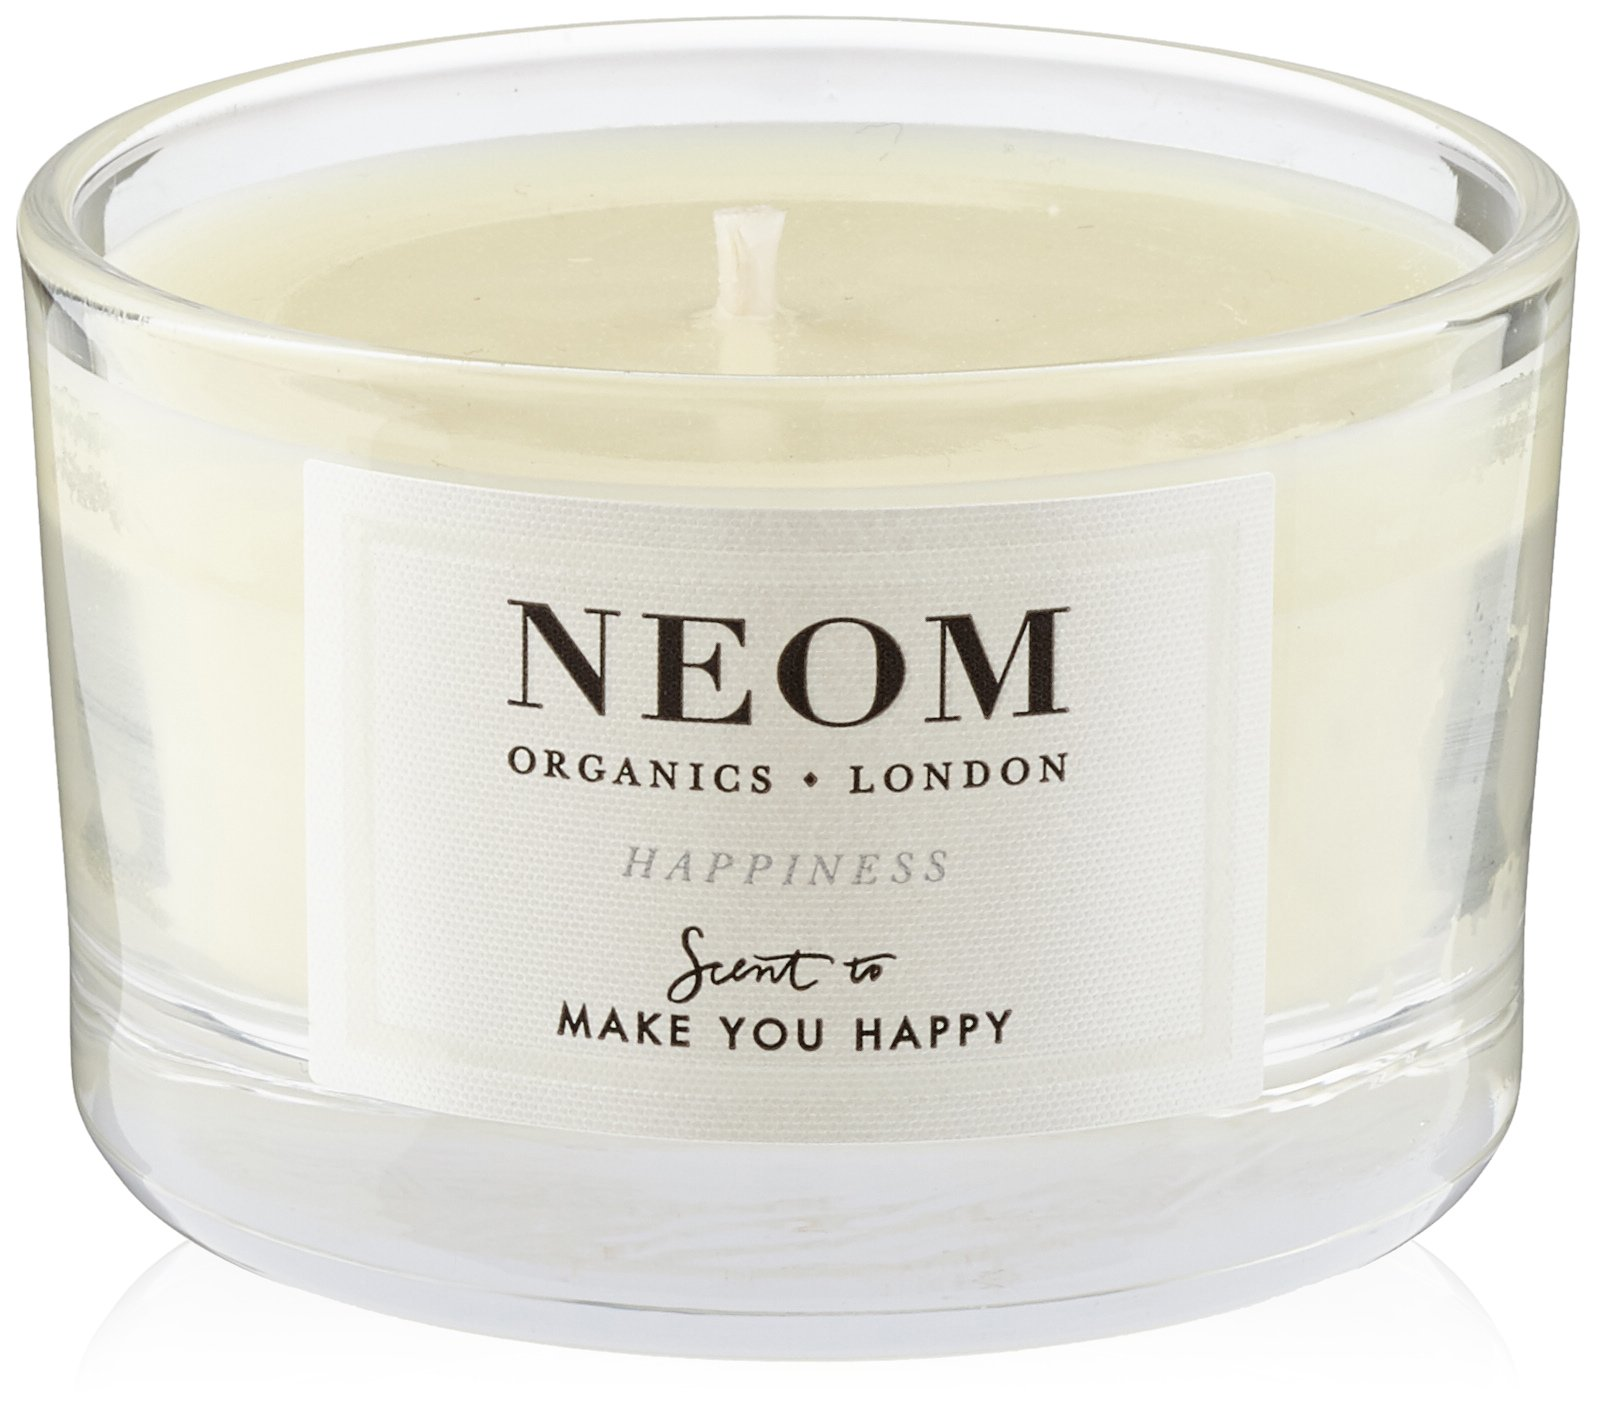 NEOM – Happiness Scented Candle, Travel (2.6 oz) – Uplifting Scent